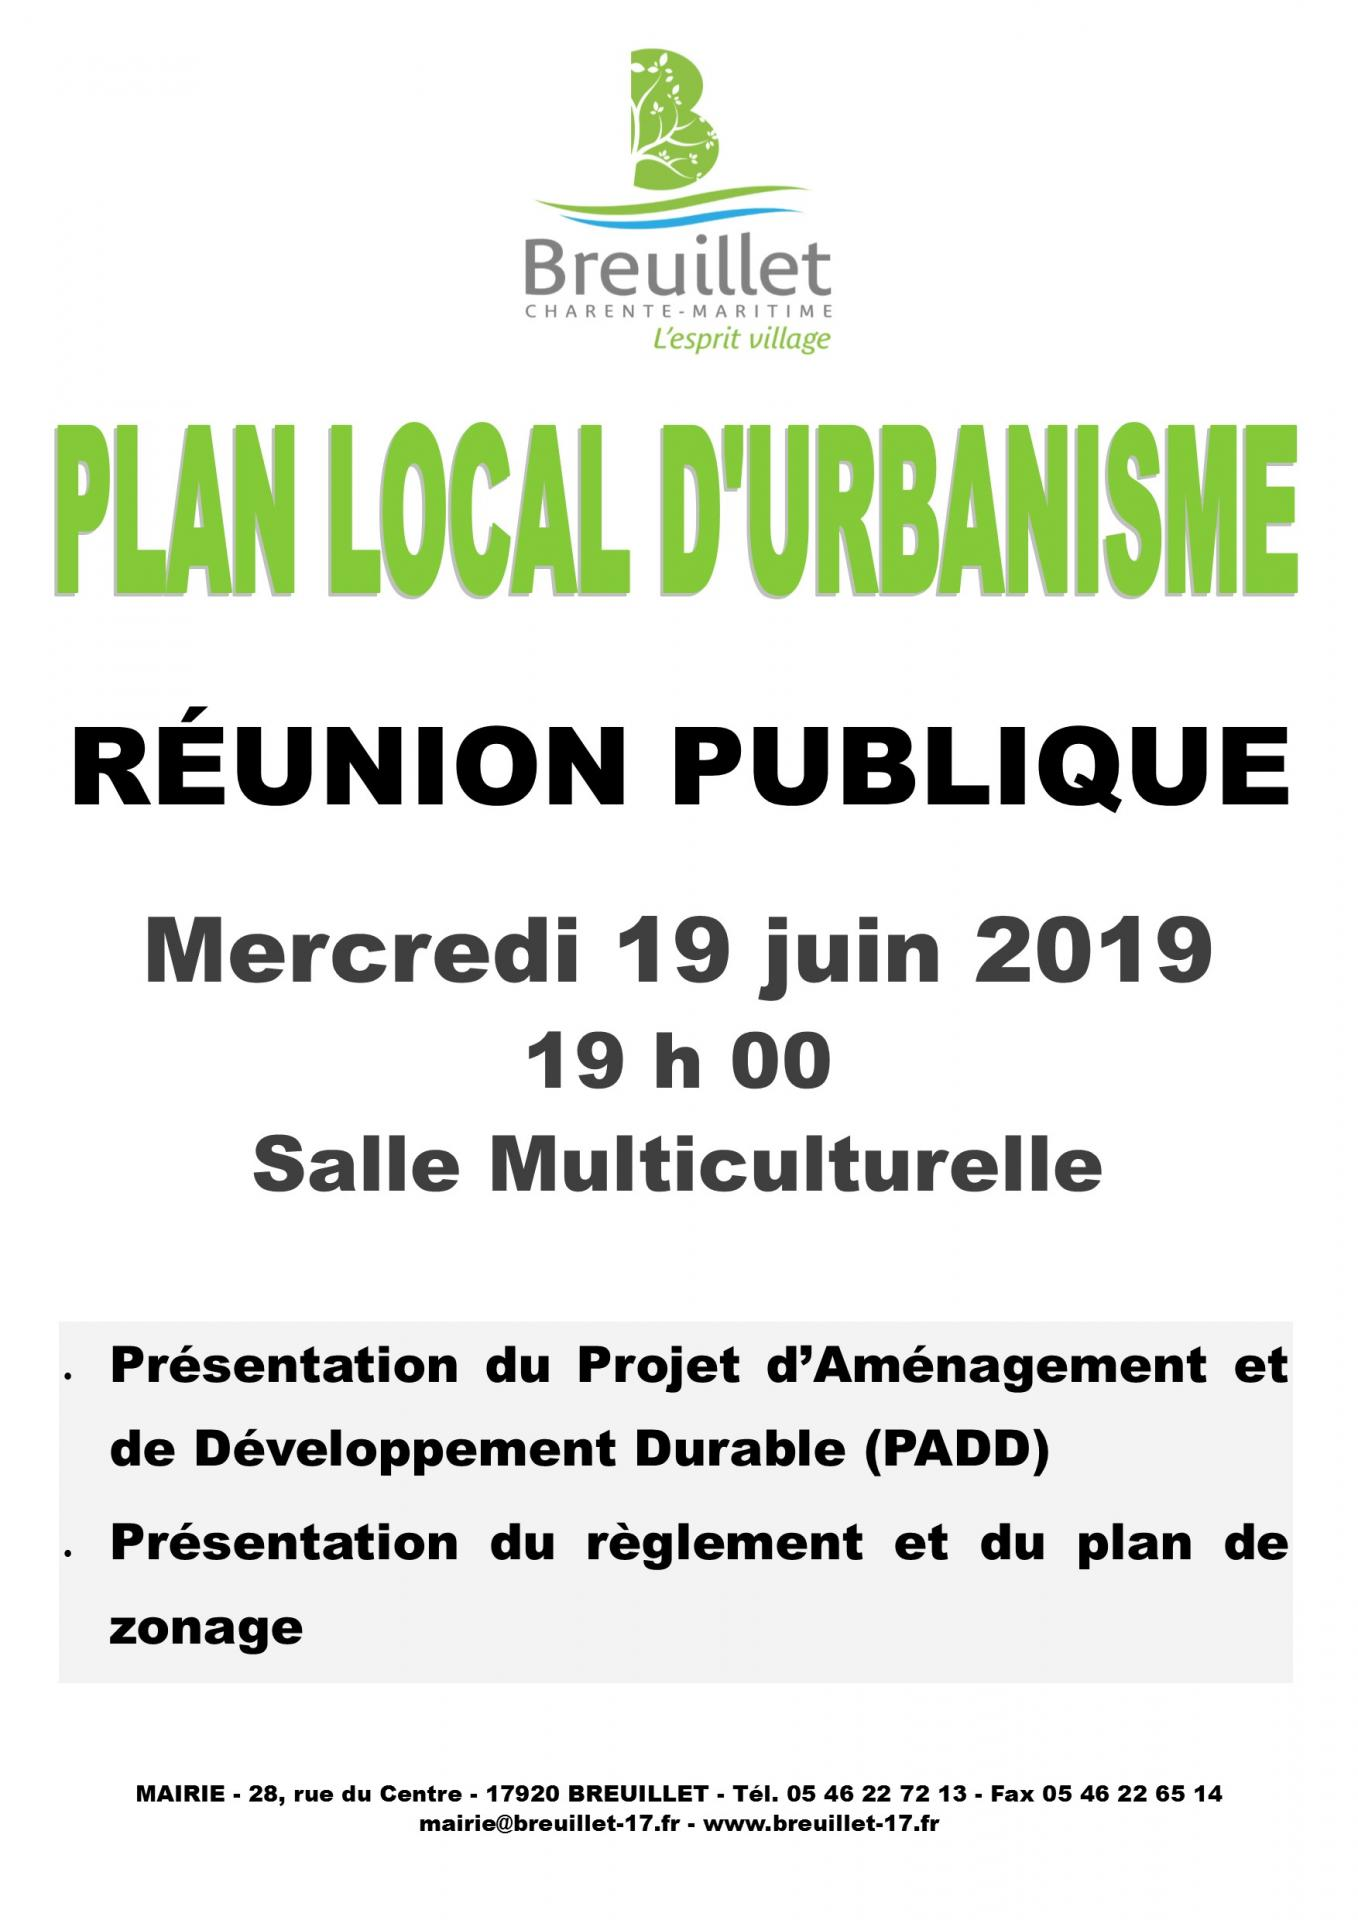 RÉUNION PUBLIQUE « PLAN LOCAL D'URBANISME »